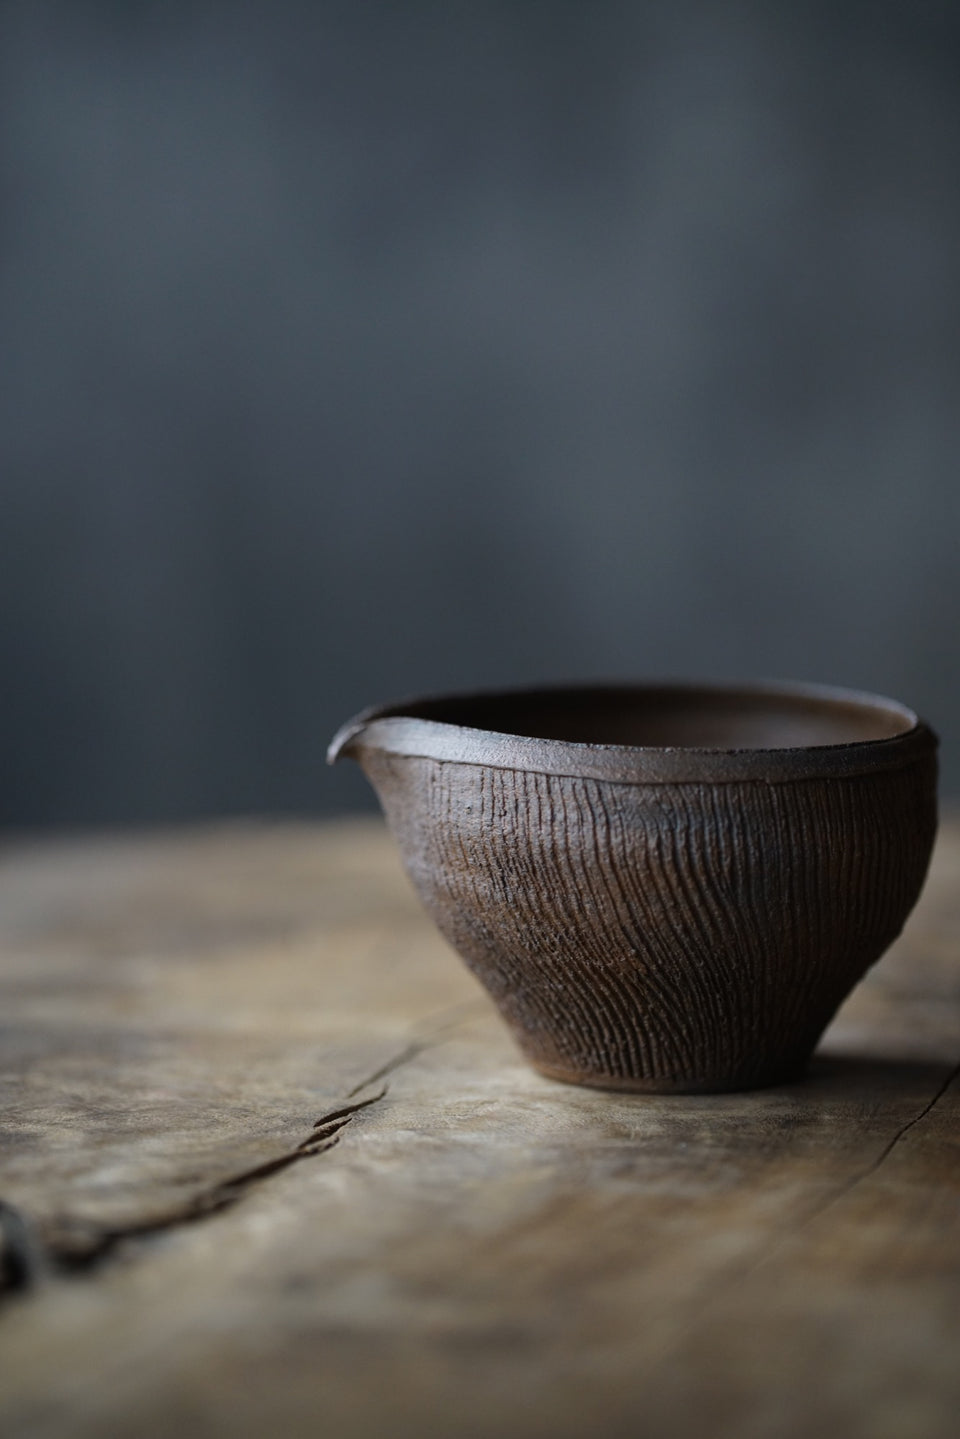 Patterned Clay Gongdaobei Pitcher (Chen Wei)